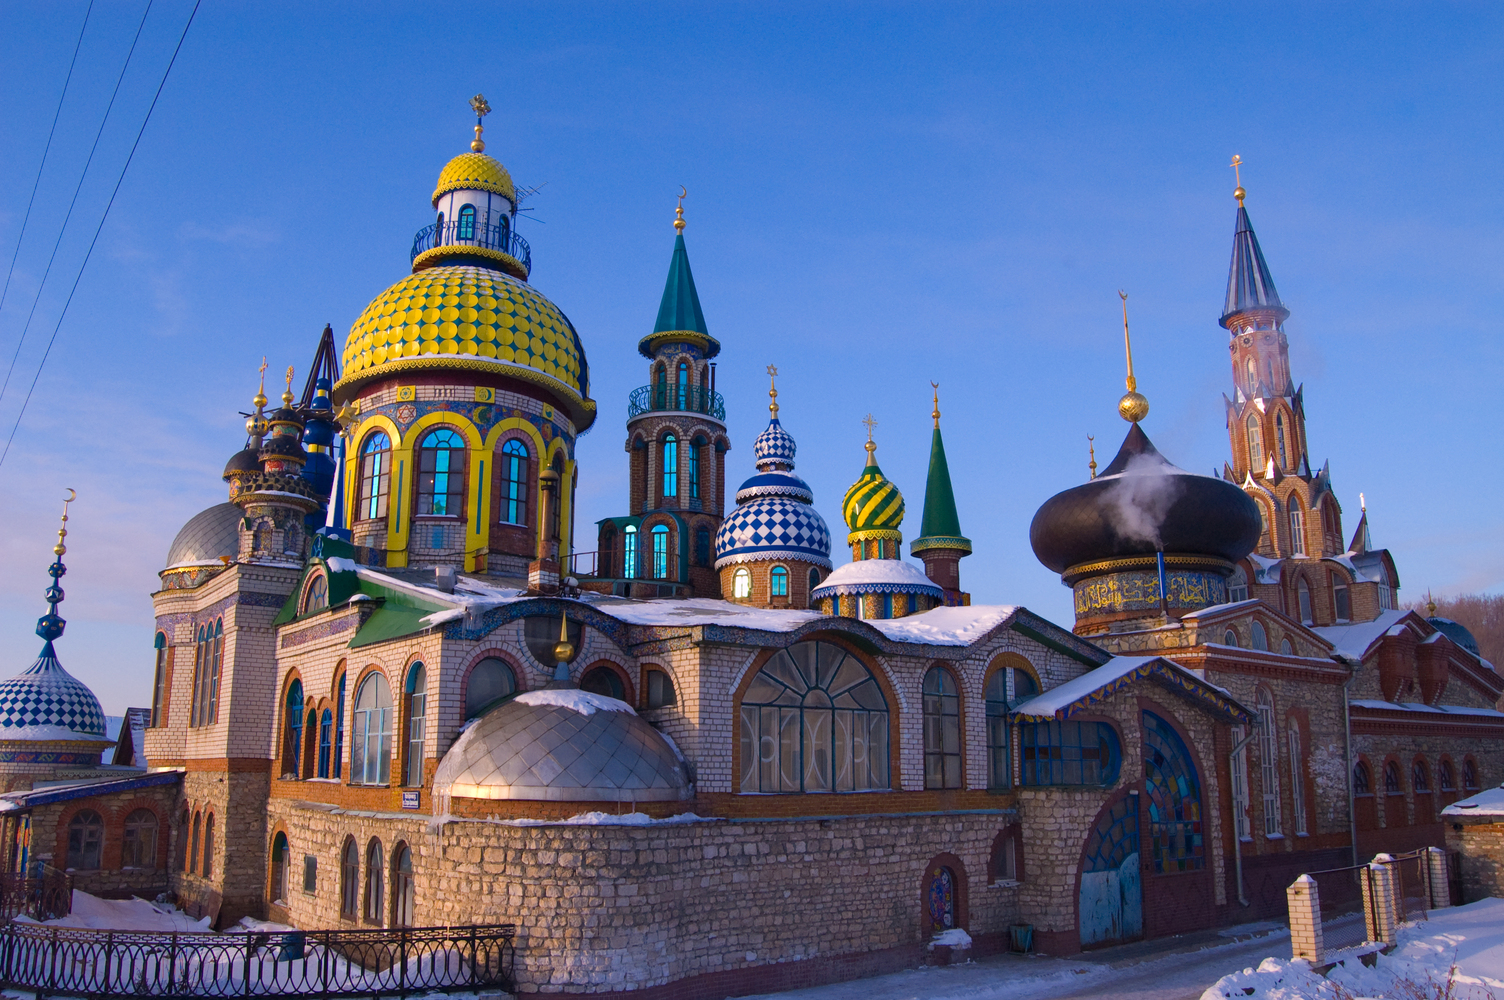 Temple of All Religions, Russia. Image© Flickr user Maarten licensed under CC BY 2.0